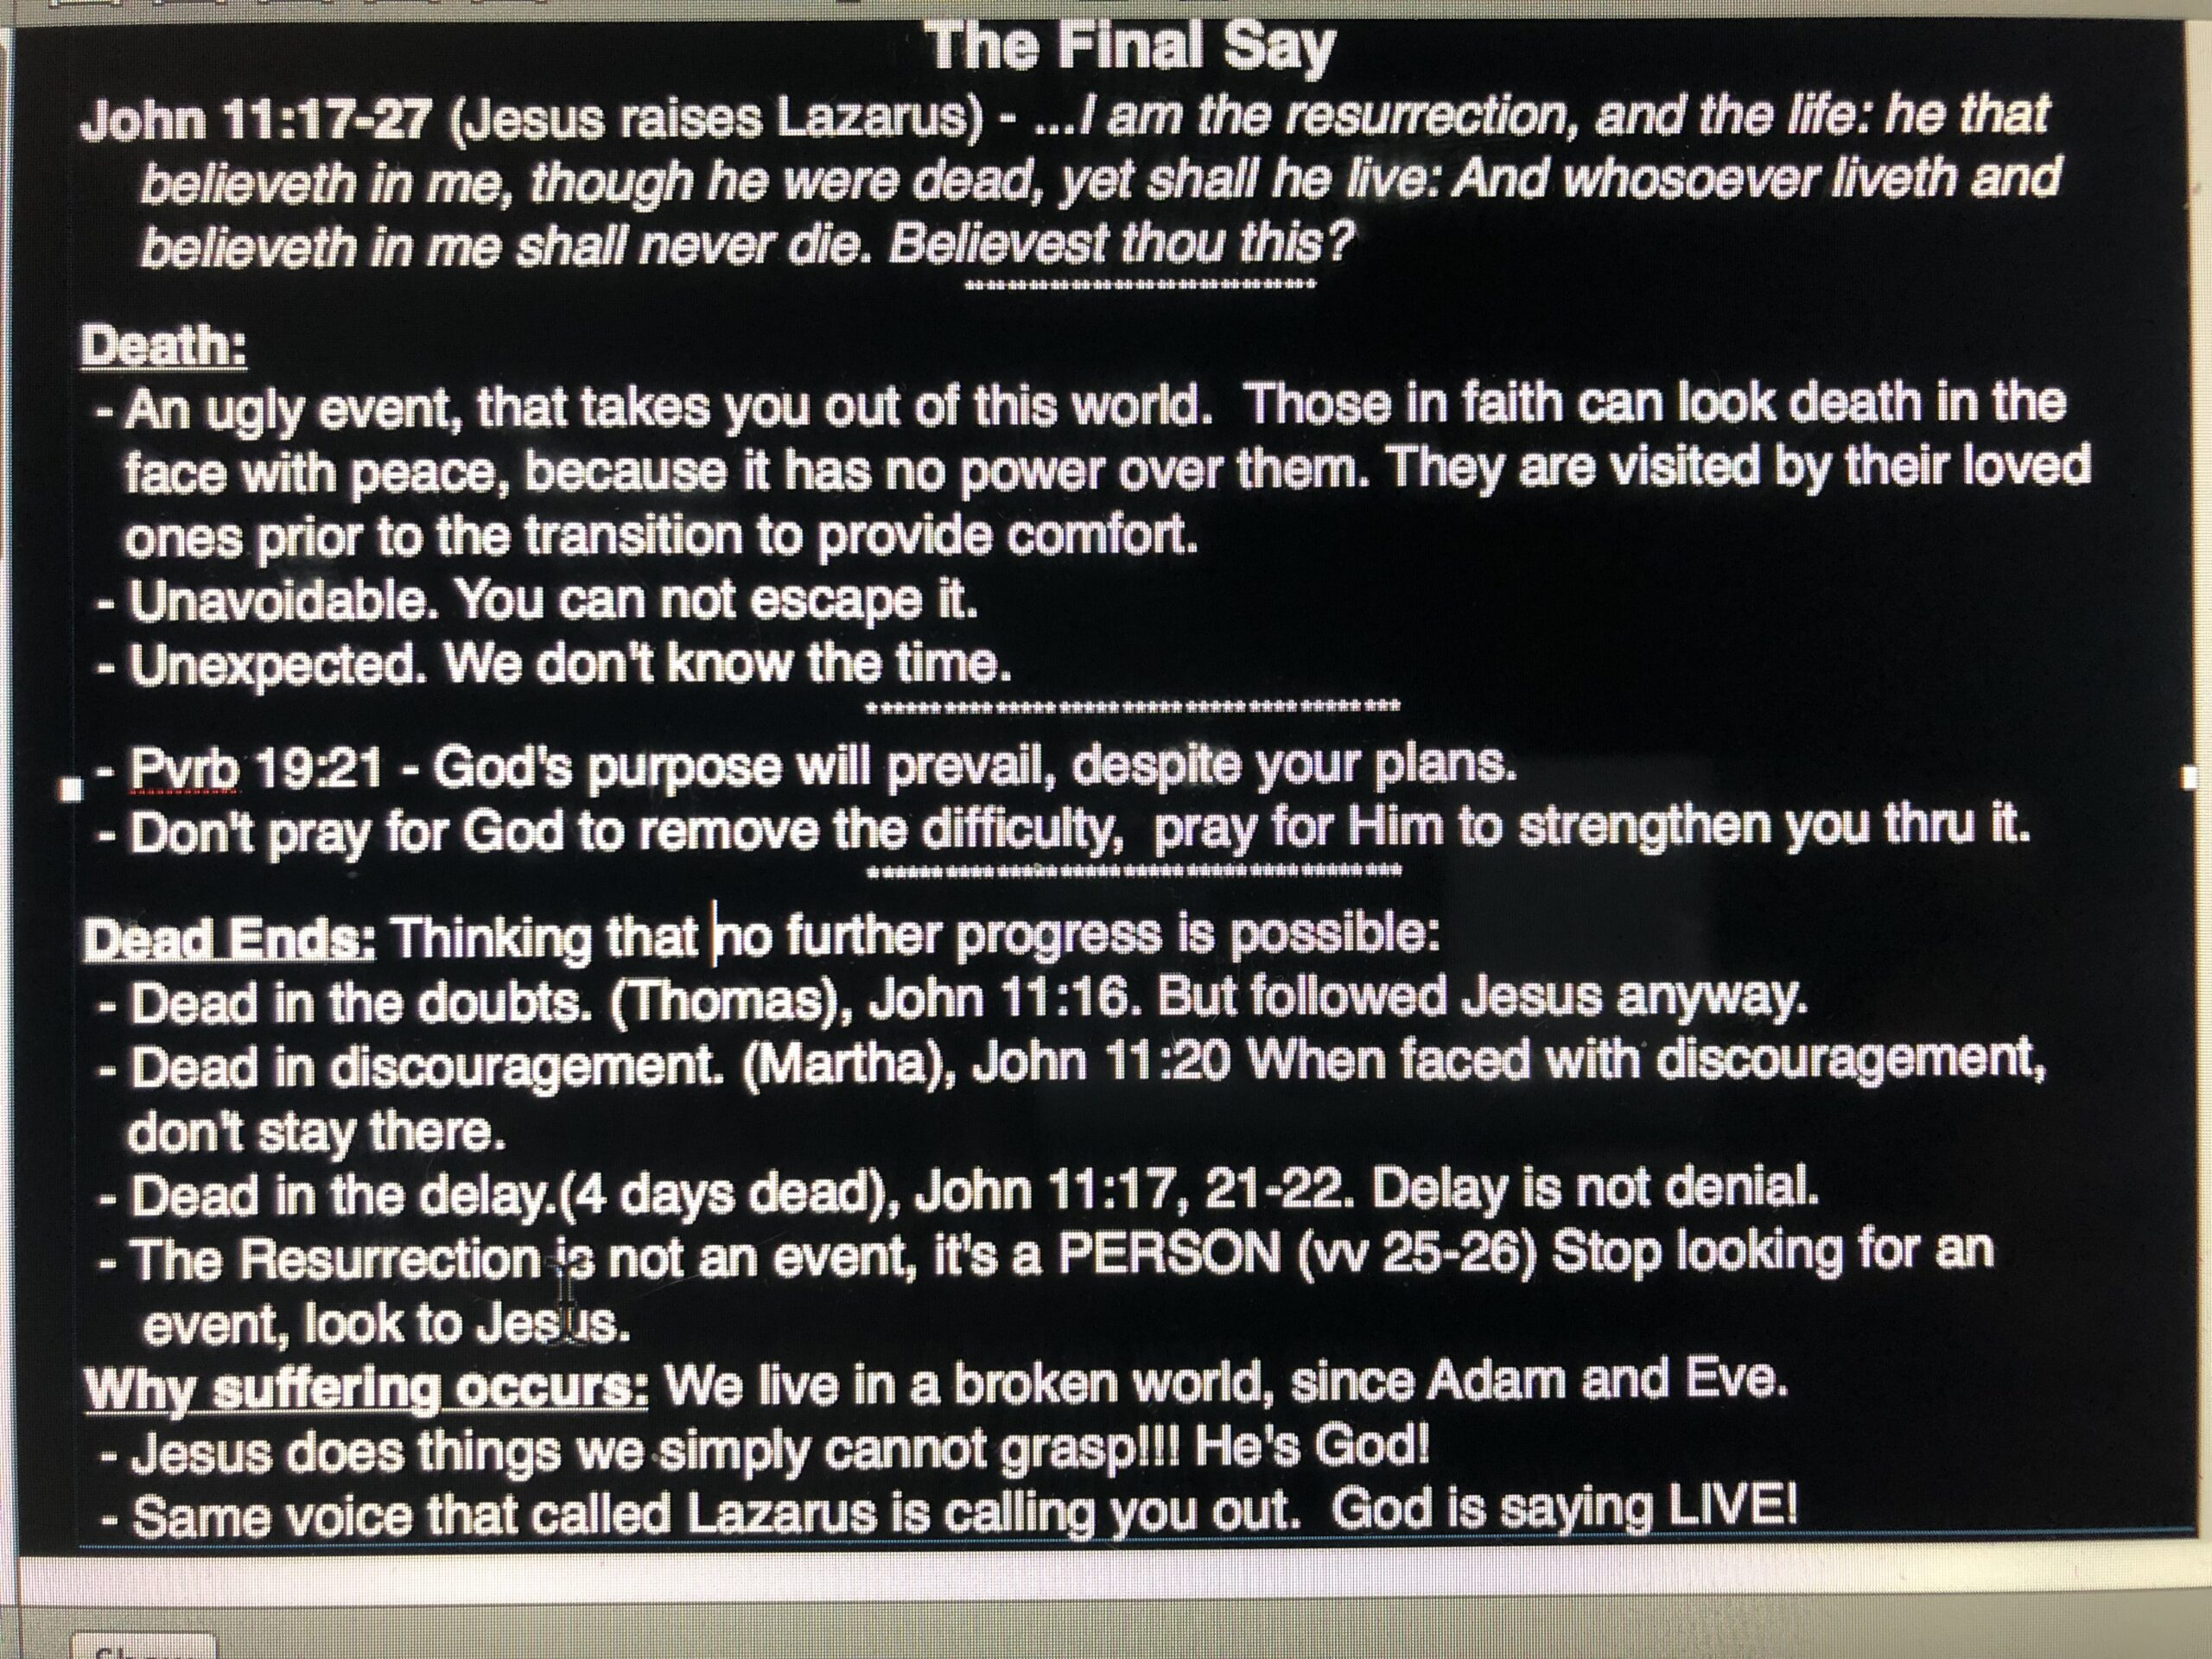 The Final Say - March 31, 2019